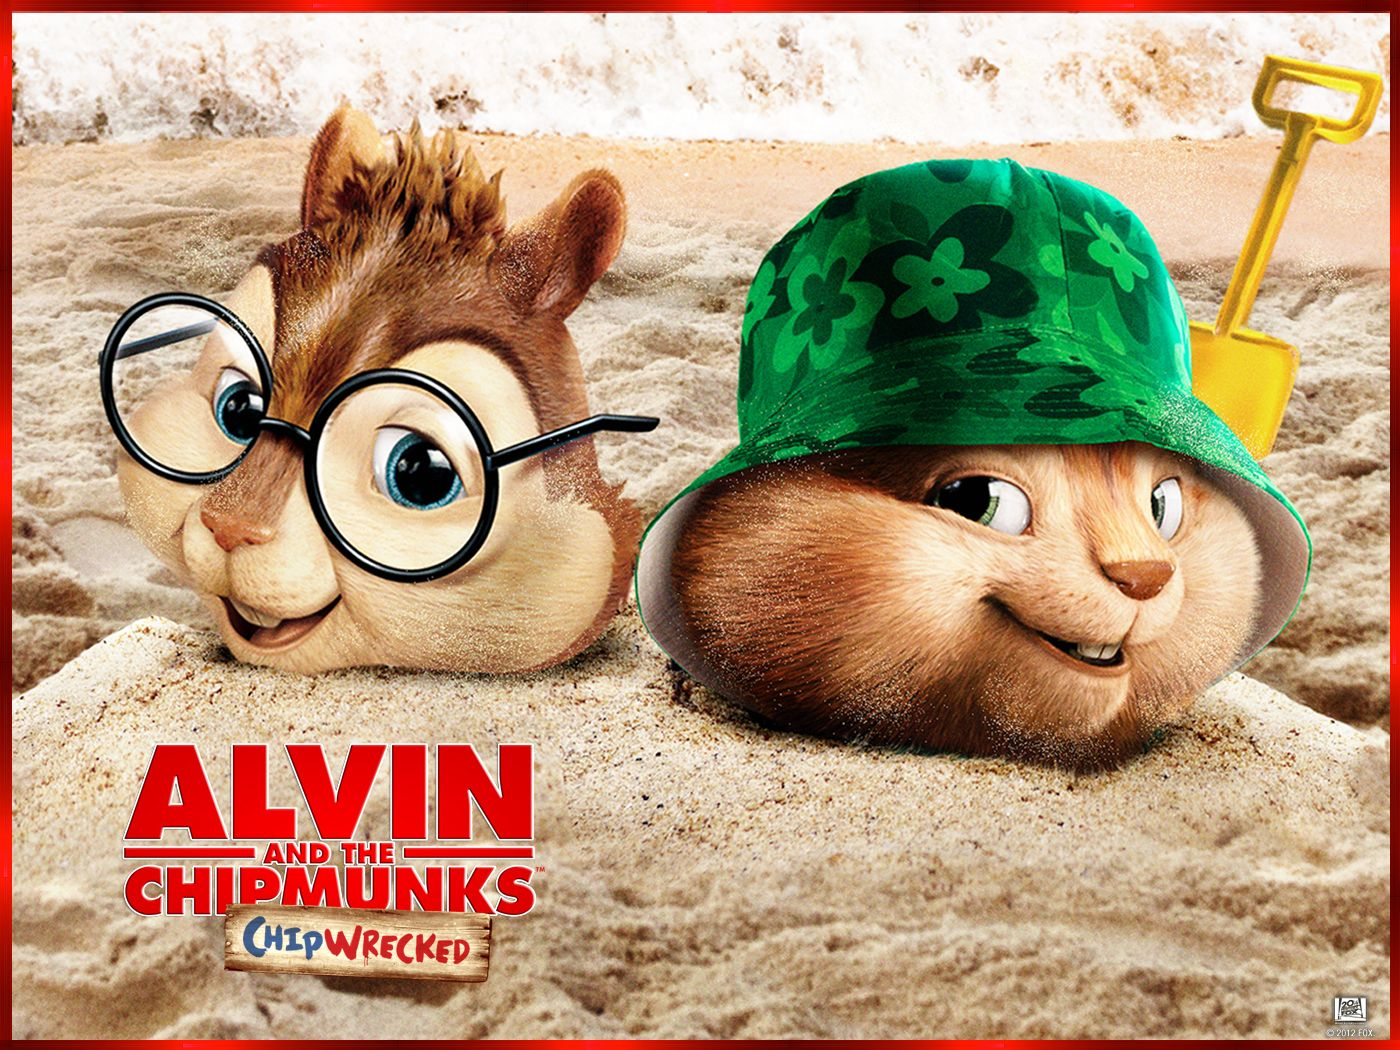 Alvin and the Chipmunks Wallpaper | Munk Yourself - Alvin and the Chipmunks:  Chip-wrecked - On Blu-Ray .